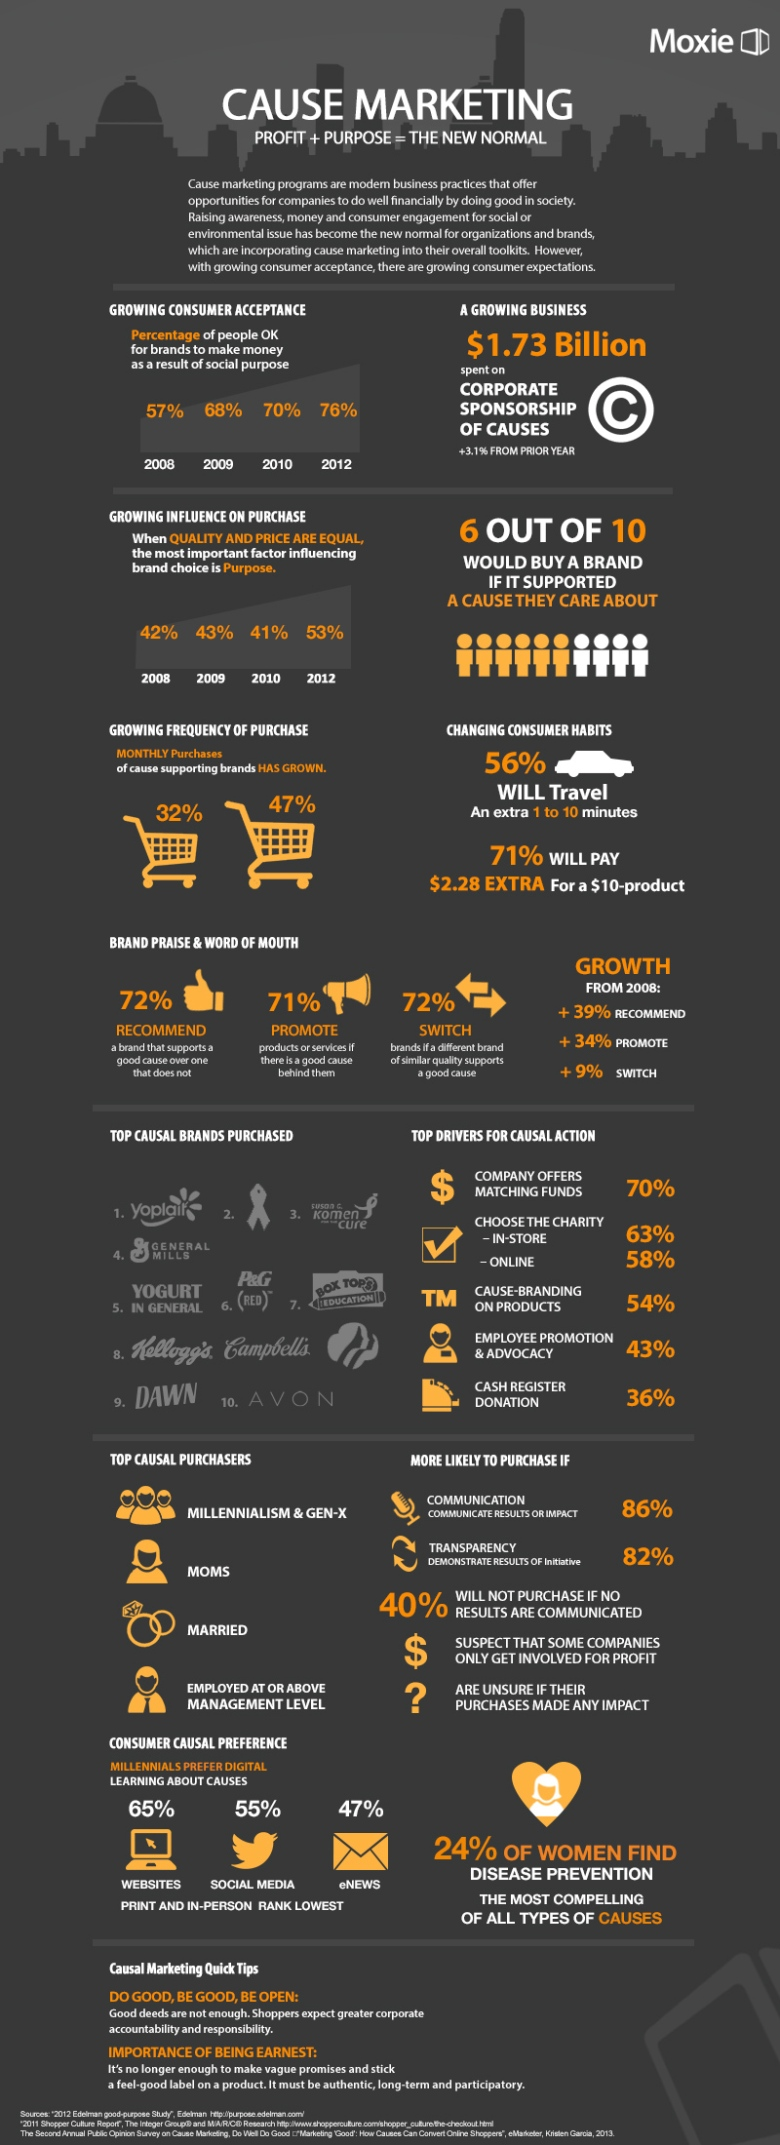 04-29-13_CauseMarketing Inforgraphic